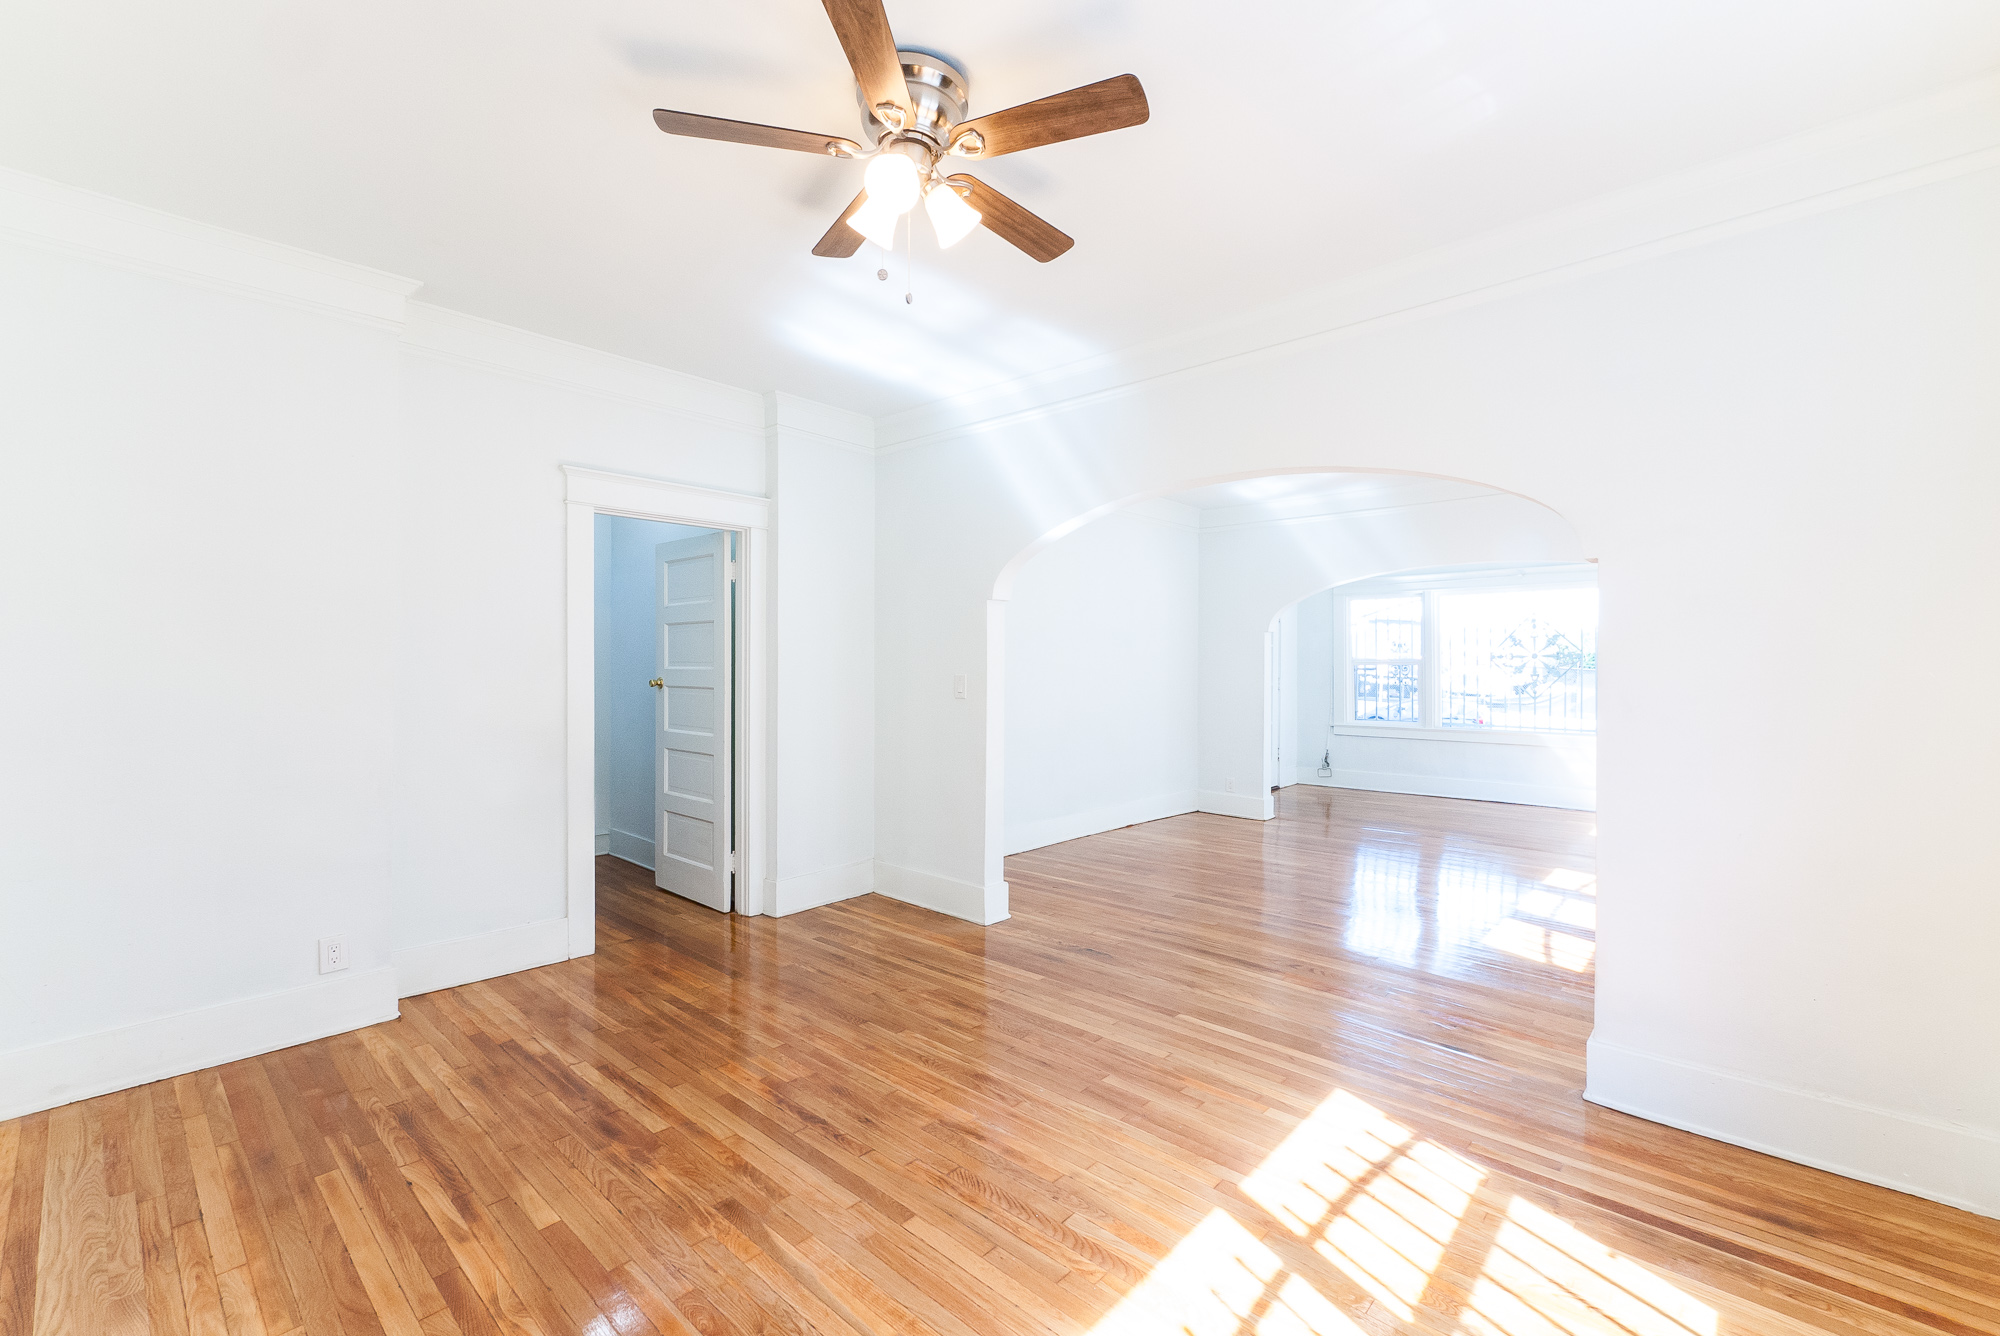 HUGE charming three bedroom Duplex | Gorgeous original hardwood floors | Sun room | TONS of storage | Near Echo Park & DTLA